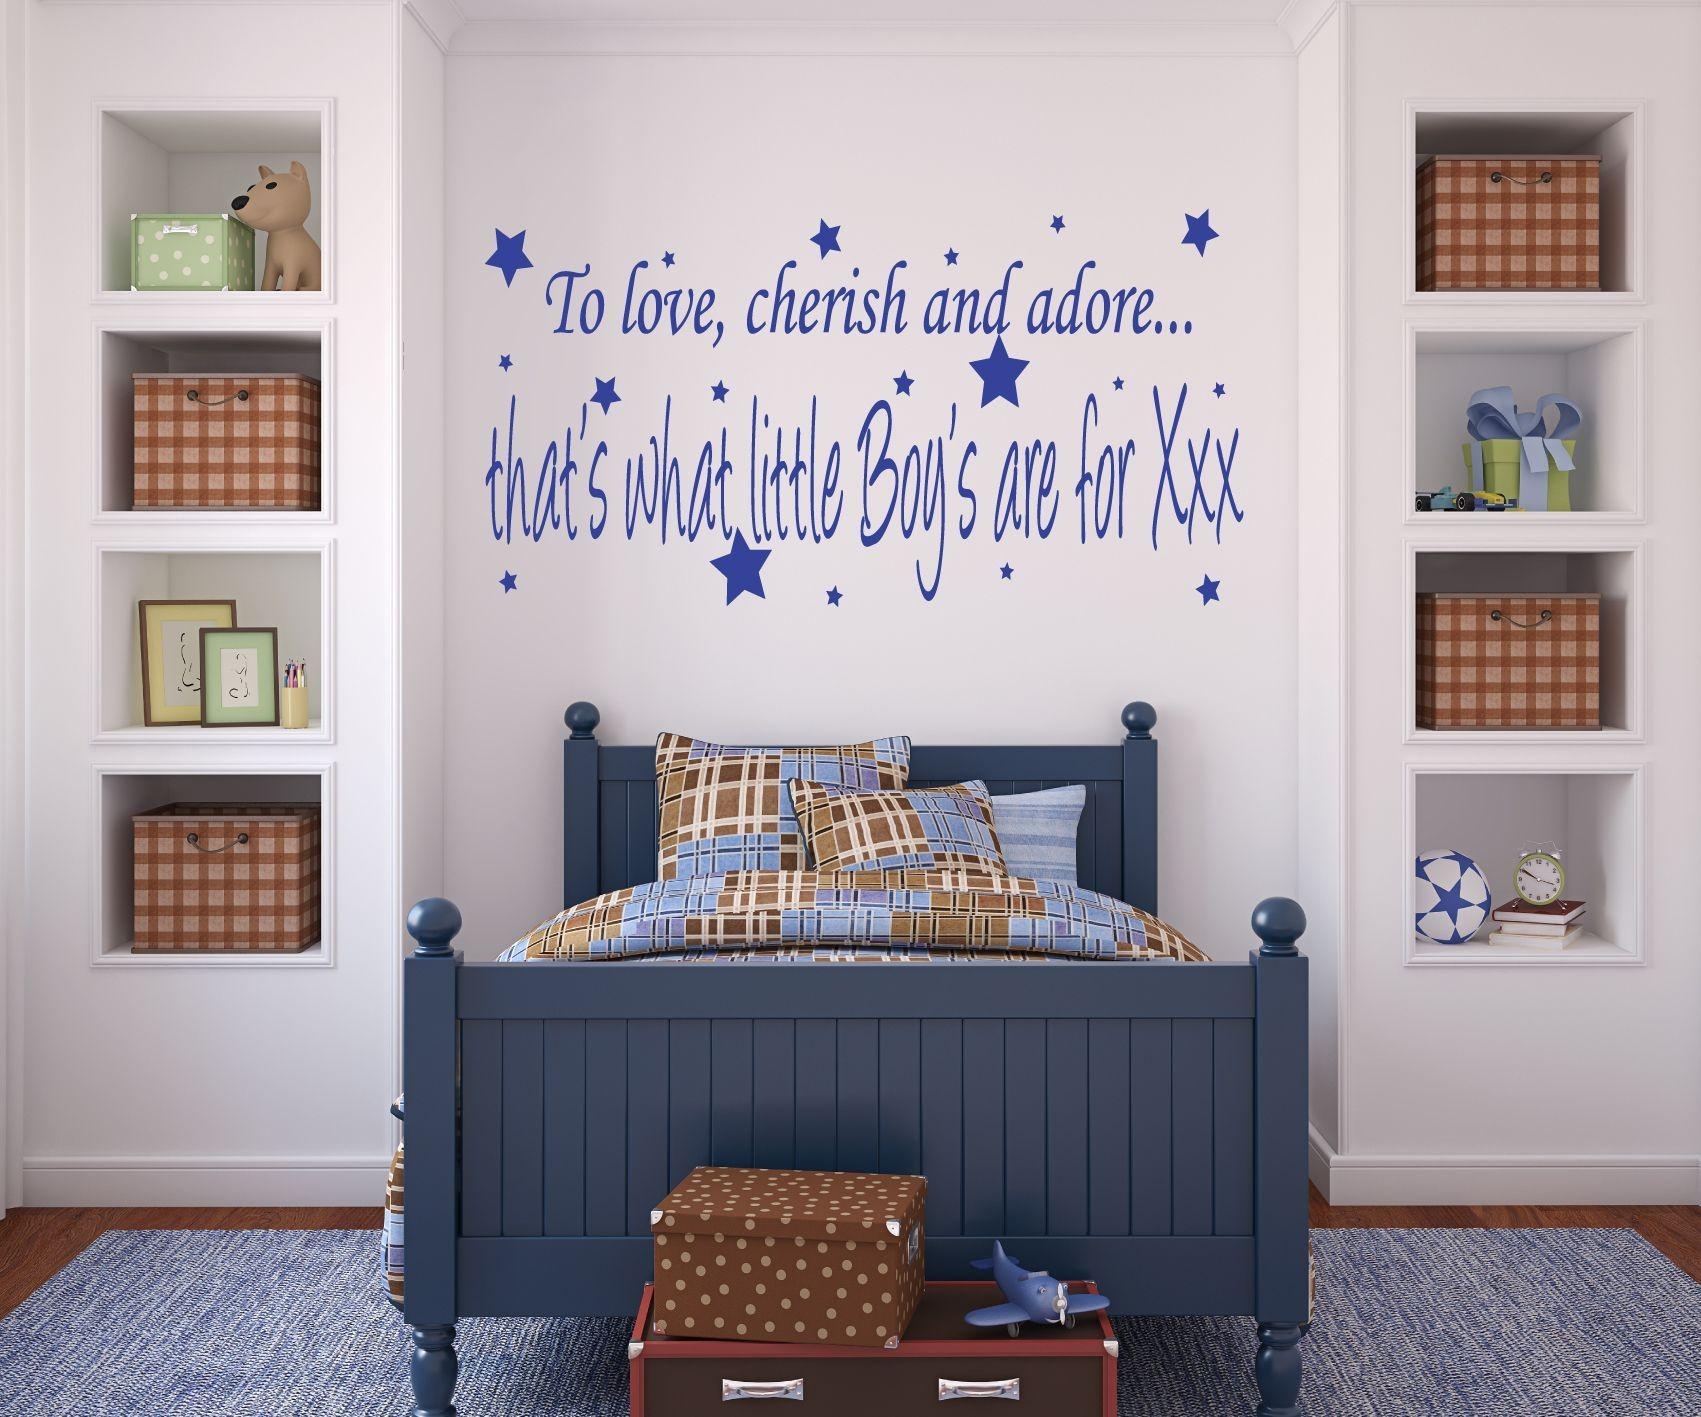 Bedroom: Artistic Navy Blue Wall Quote Sticker In Bedroom Art With Regard To Navy Blue Wall Art (Image 4 of 20)